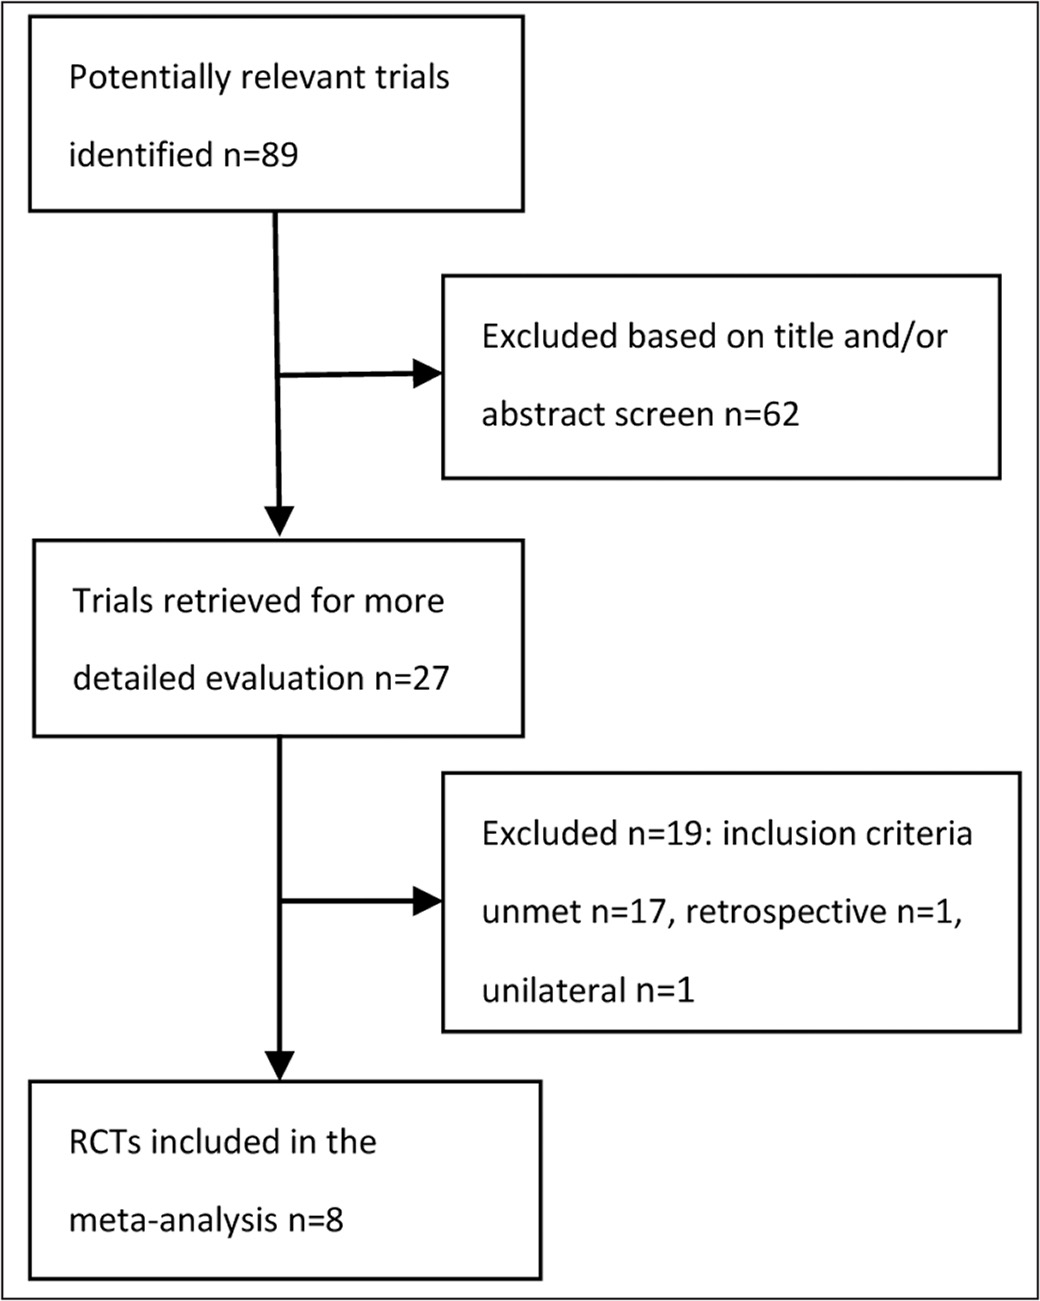 Study selection process of randomized controlled trials (RCTs).